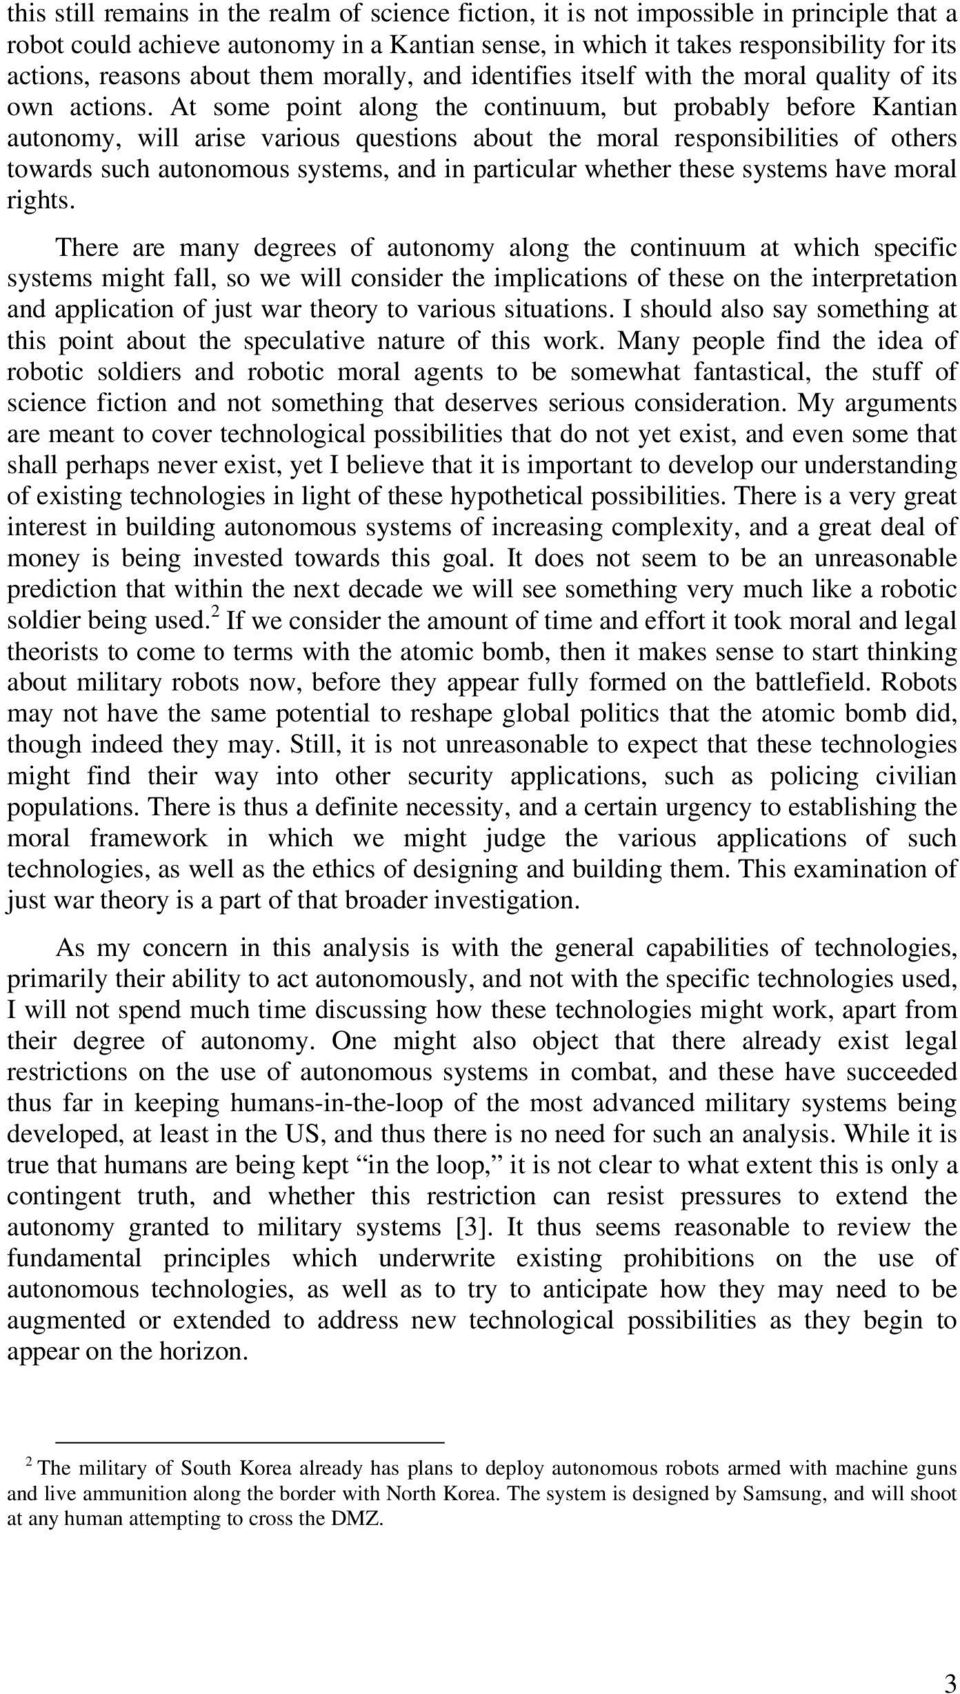 At some point along the continuum, but probably before Kantian autonomy, will arise various questions about the moral responsibilities of others towards such autonomous systems, and in particular